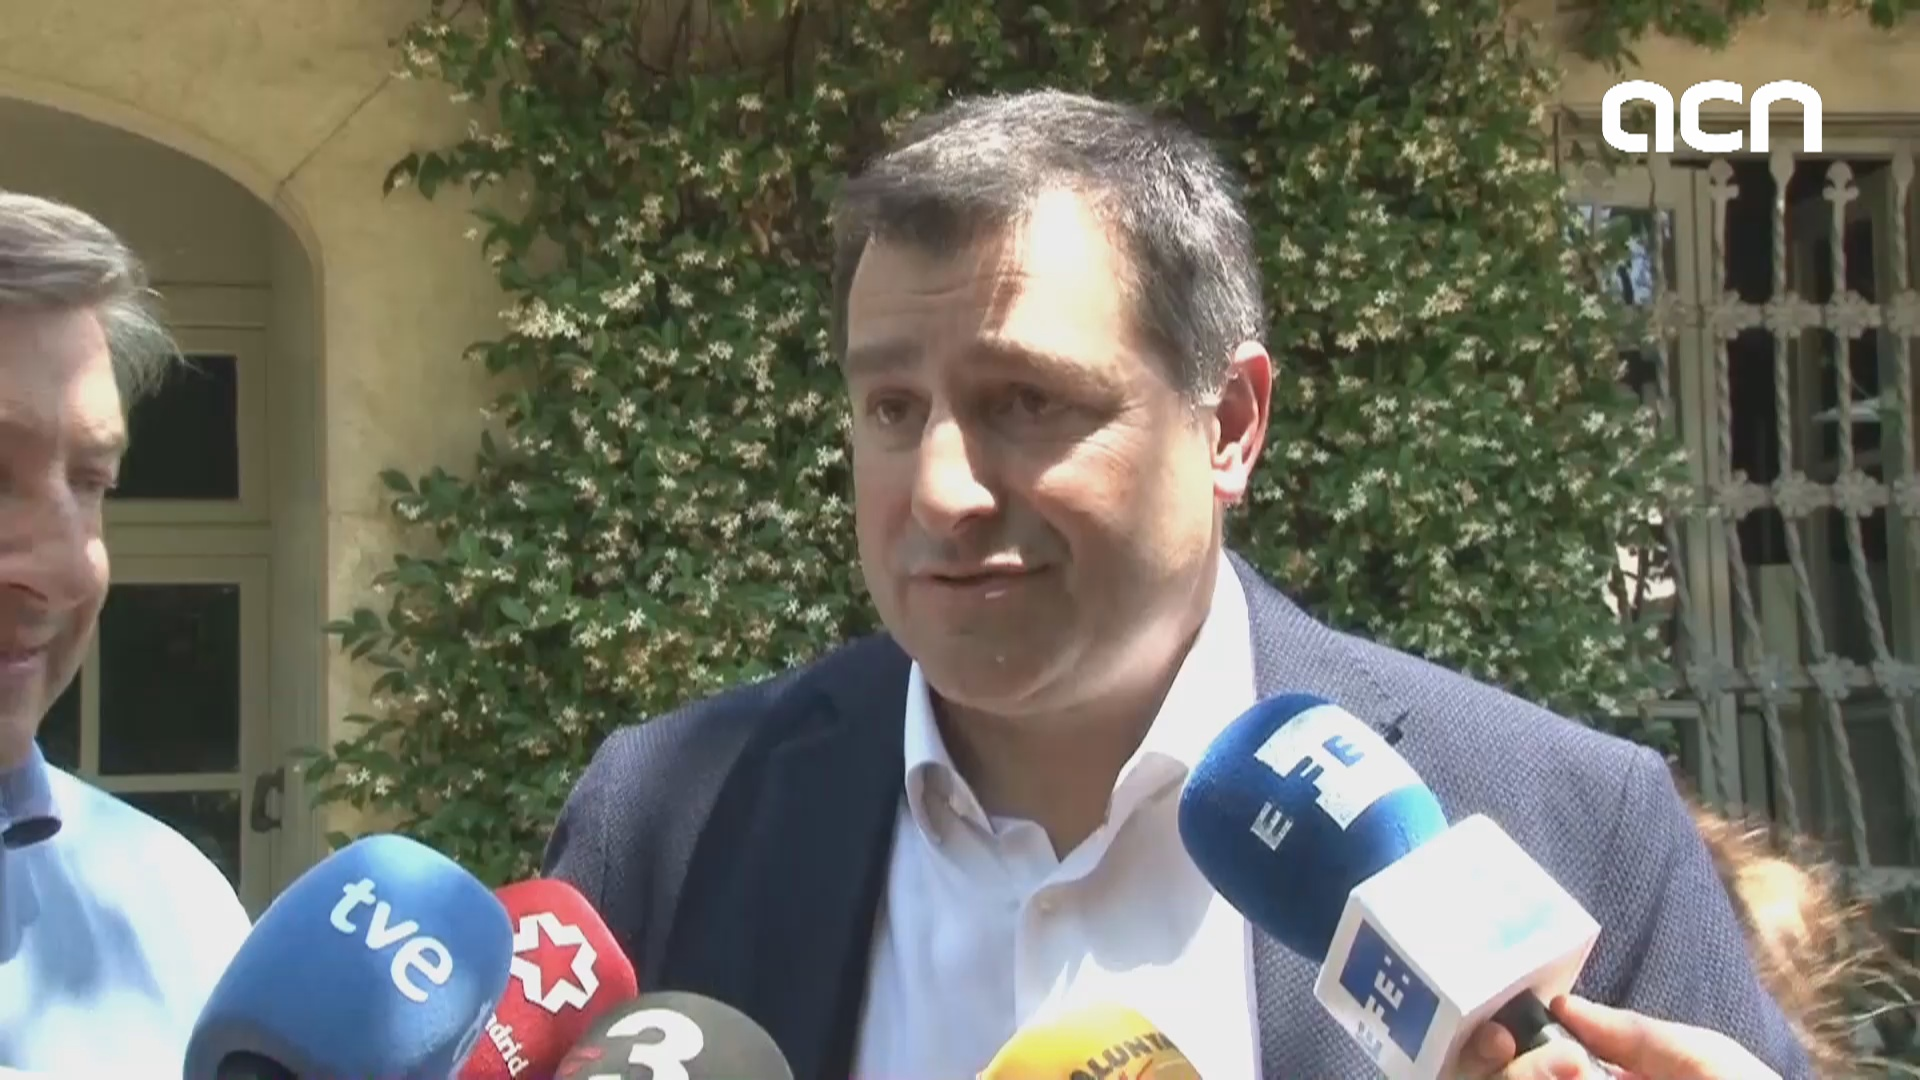 Josep Roca gives statement on political involvement